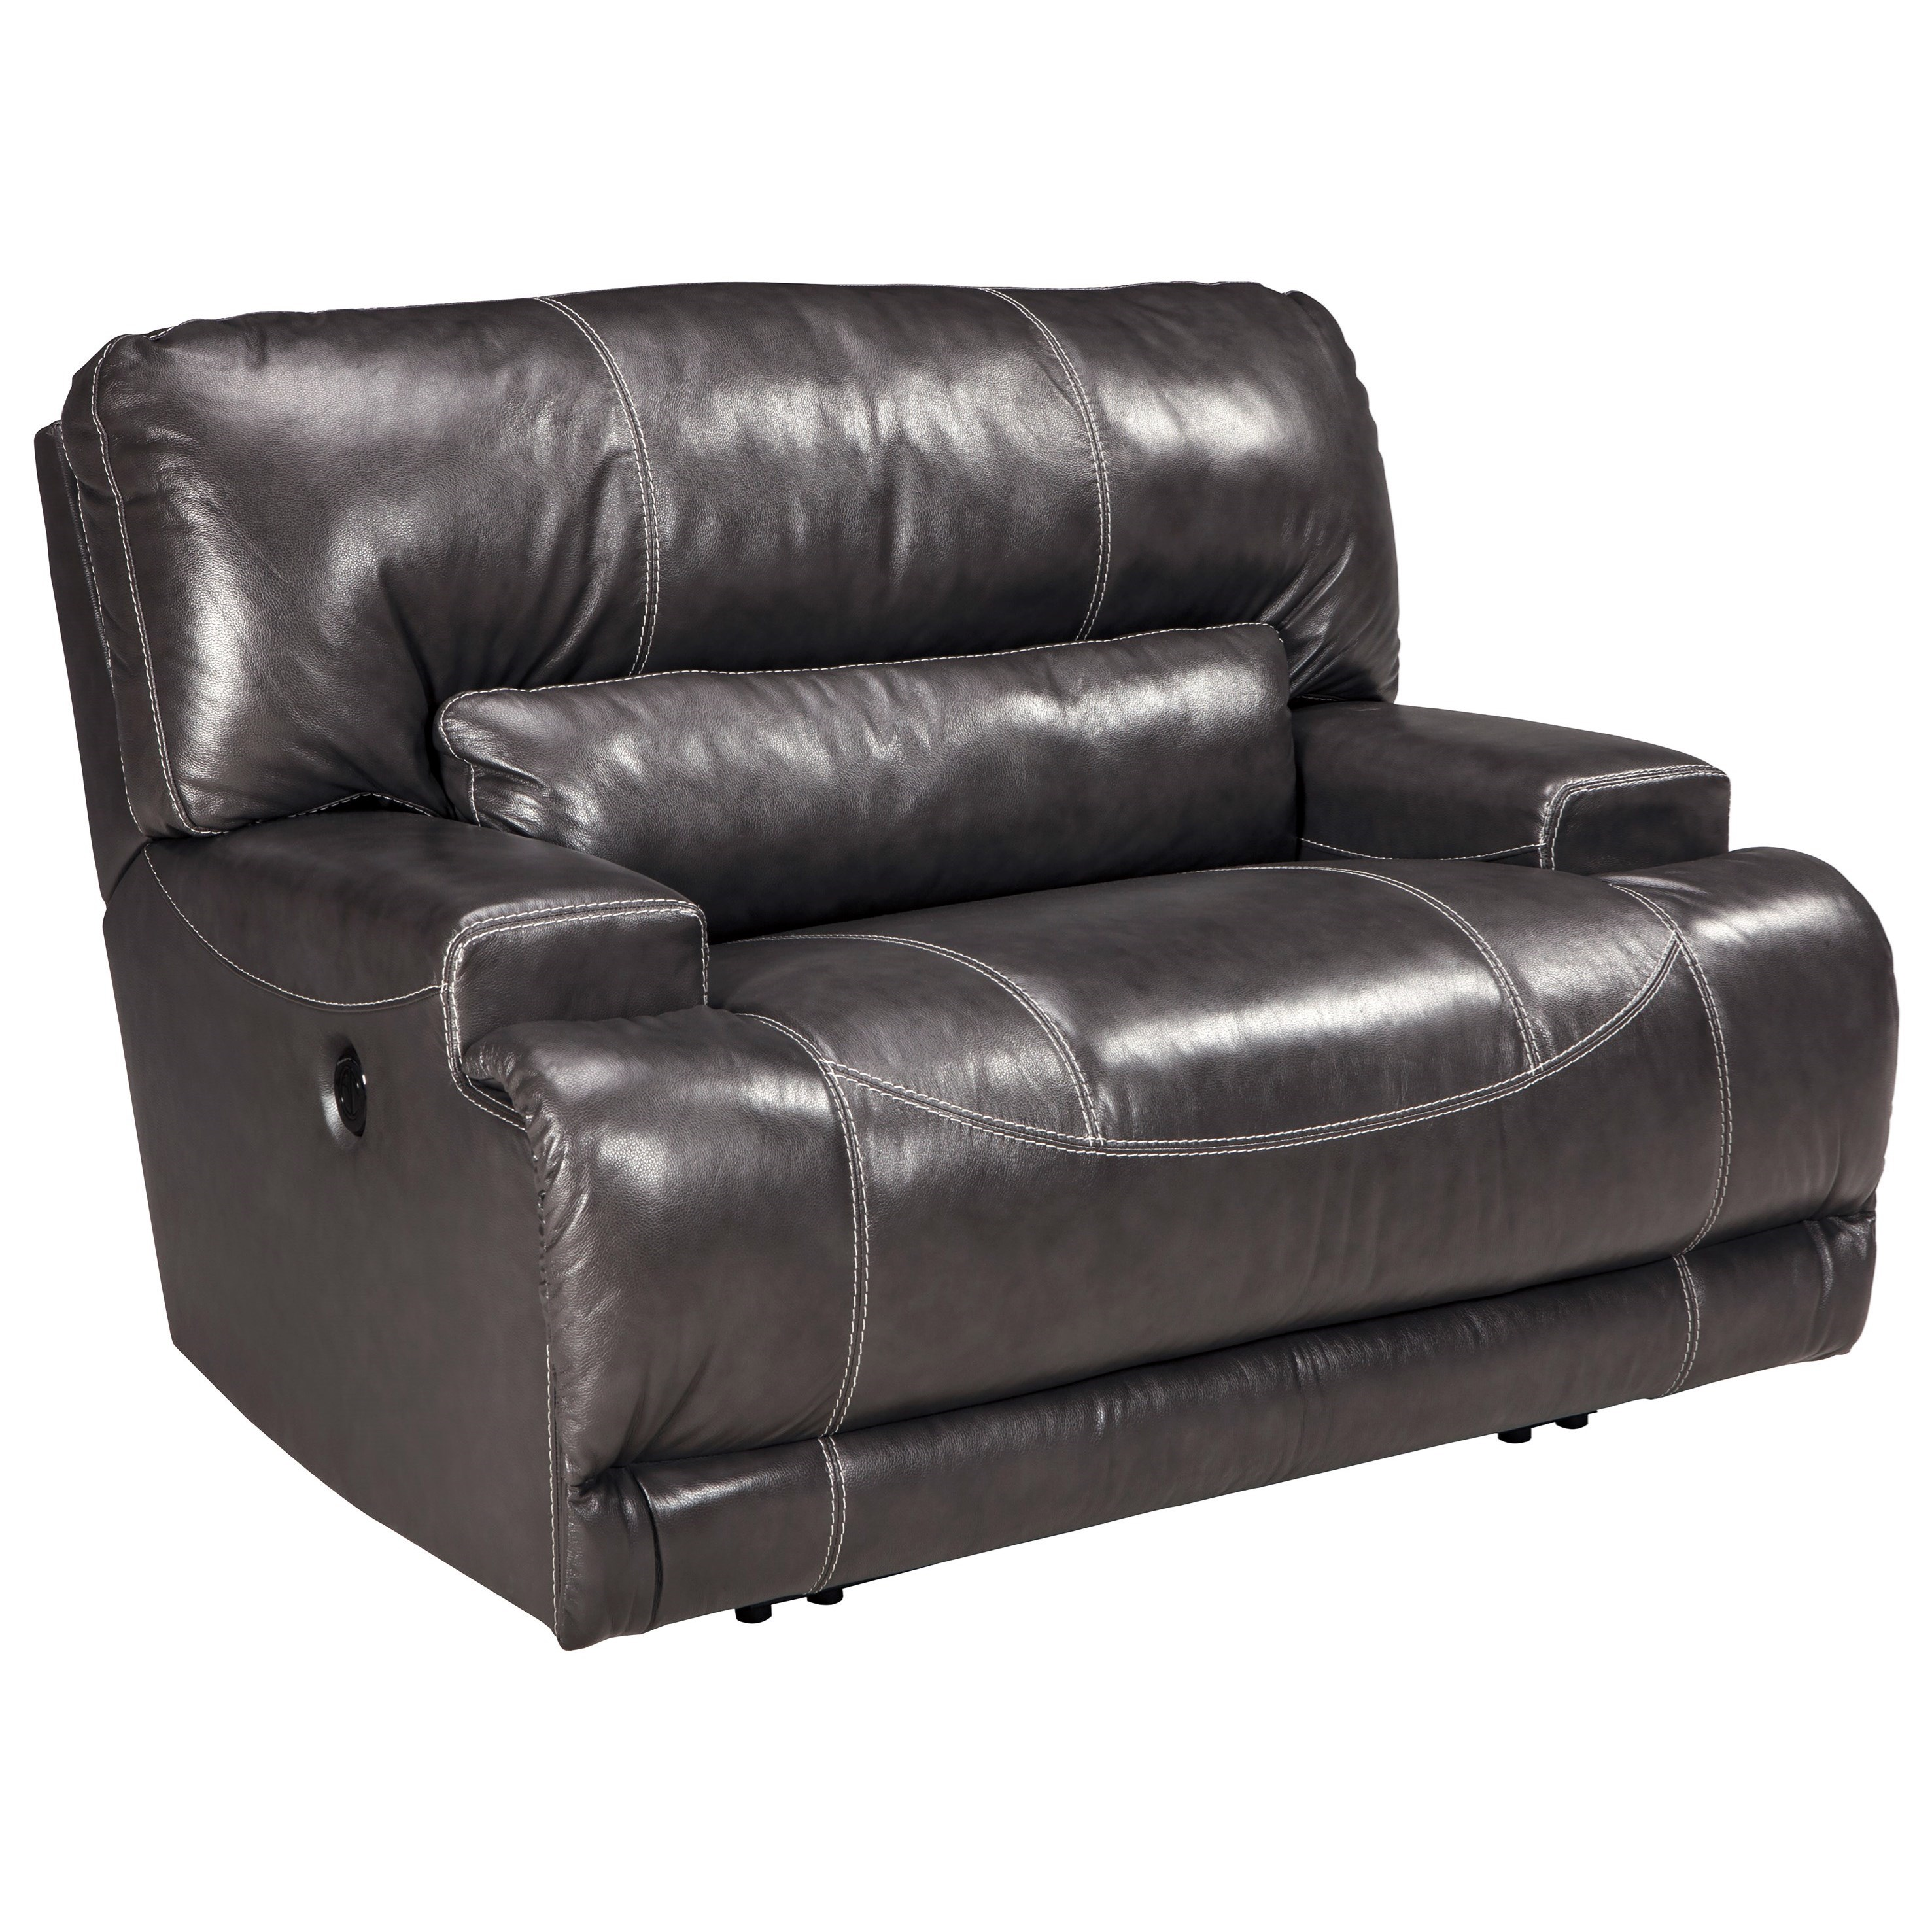 McCaskill Wide Seat Recliner by Ashley (Signature Design) at Johnny Janosik